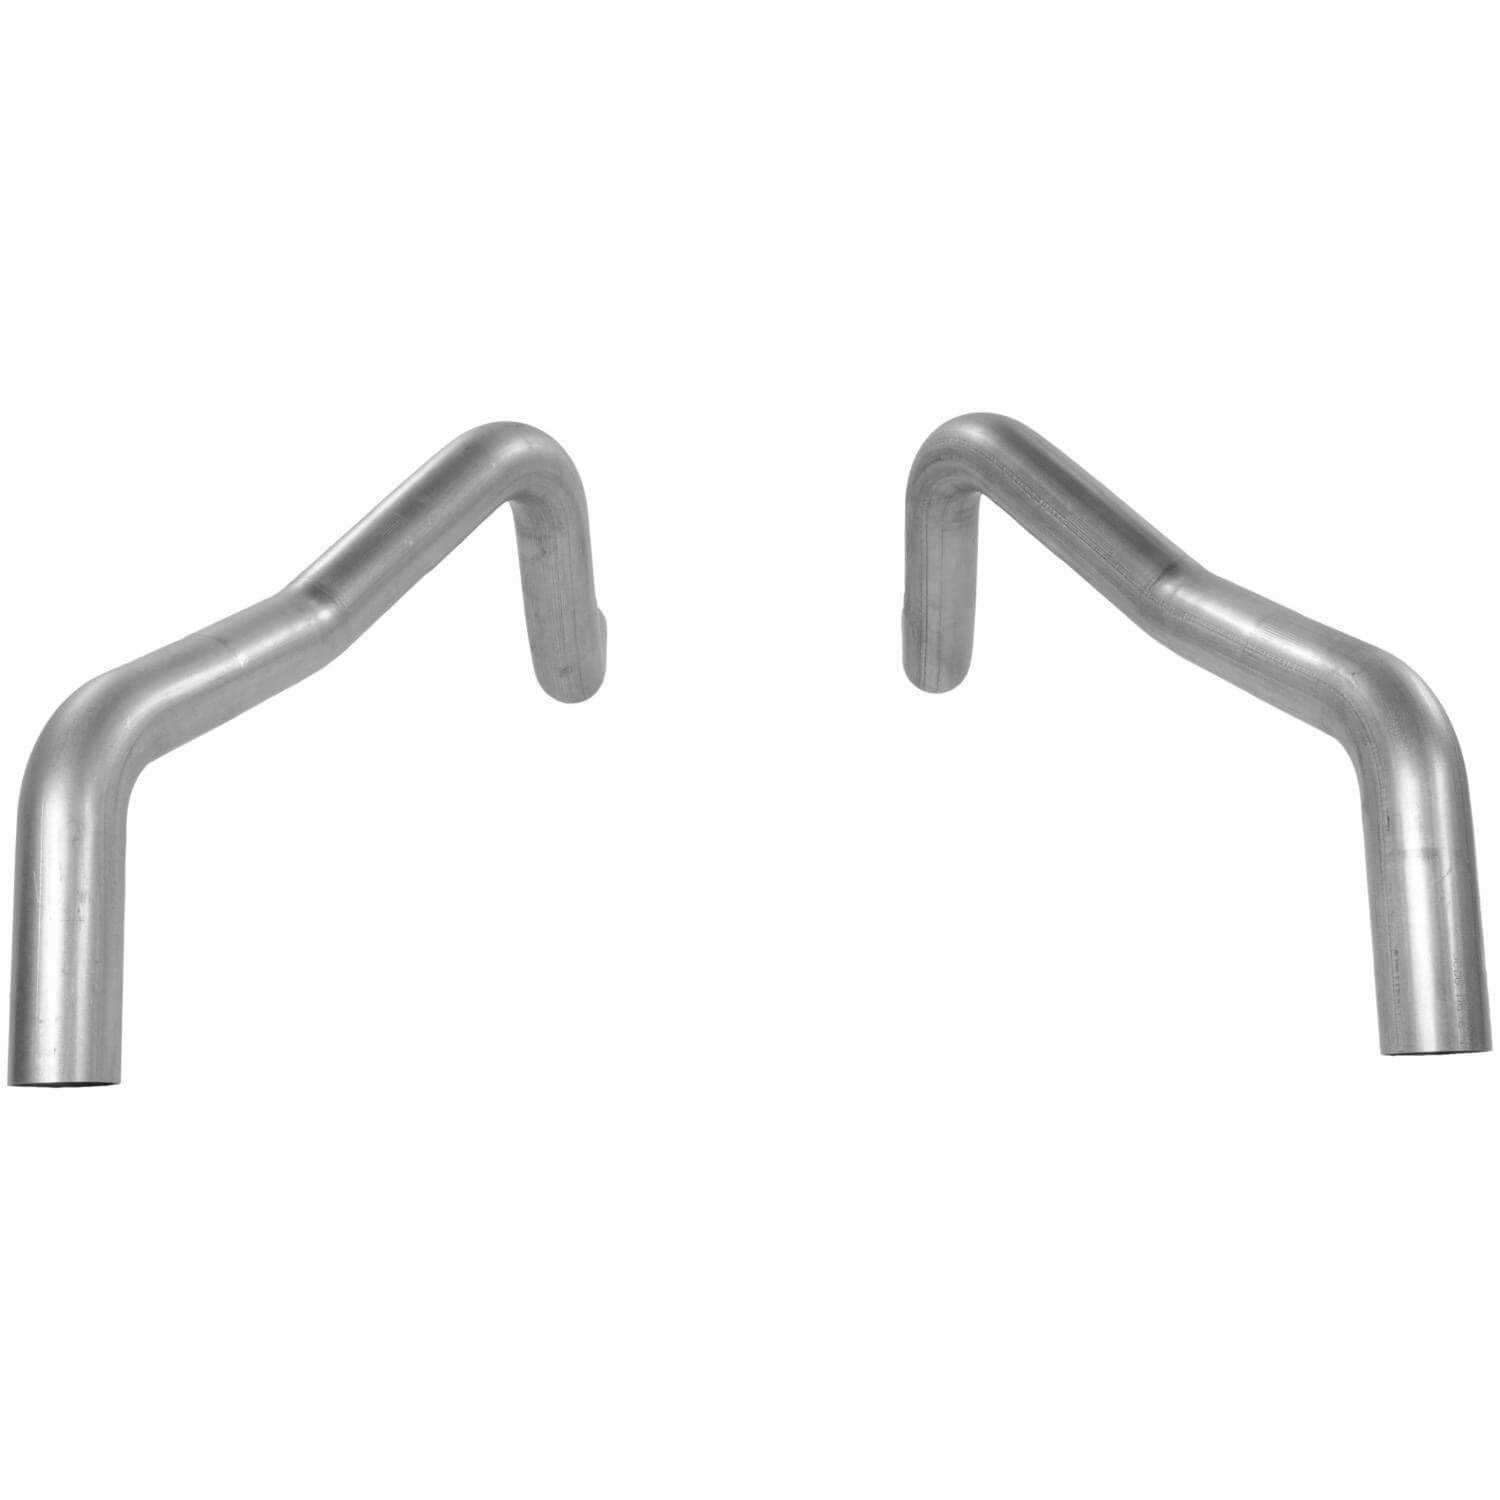 Flowmaster Tailpipe Set 15822